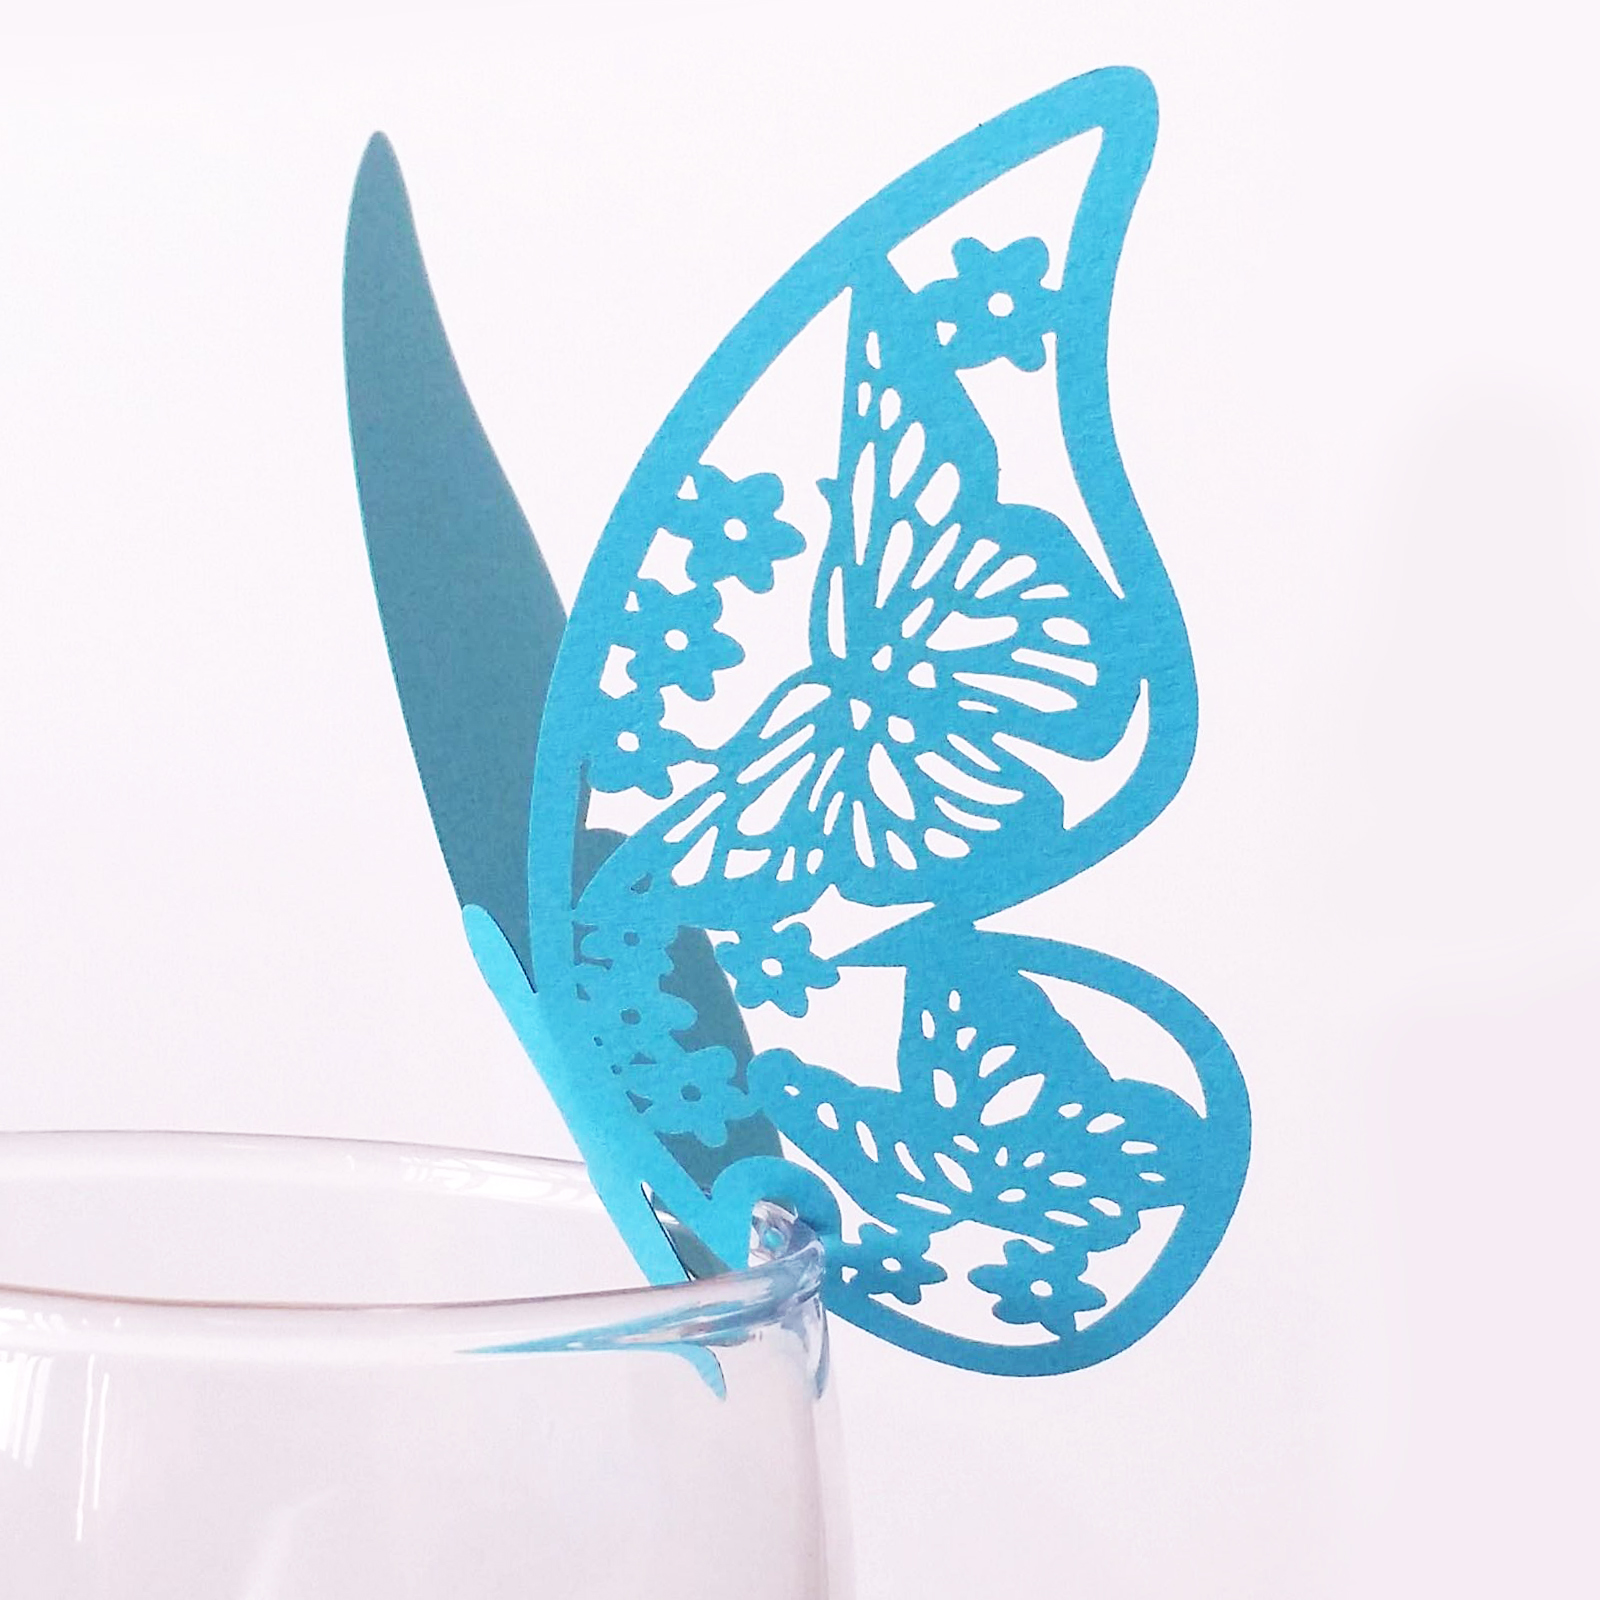 10pcs Butterfly Shaped Laser Cut Paper Place Card Elegant Escort Card / Cup Card/ Wine Glass Card For Wedding Decoration Favors